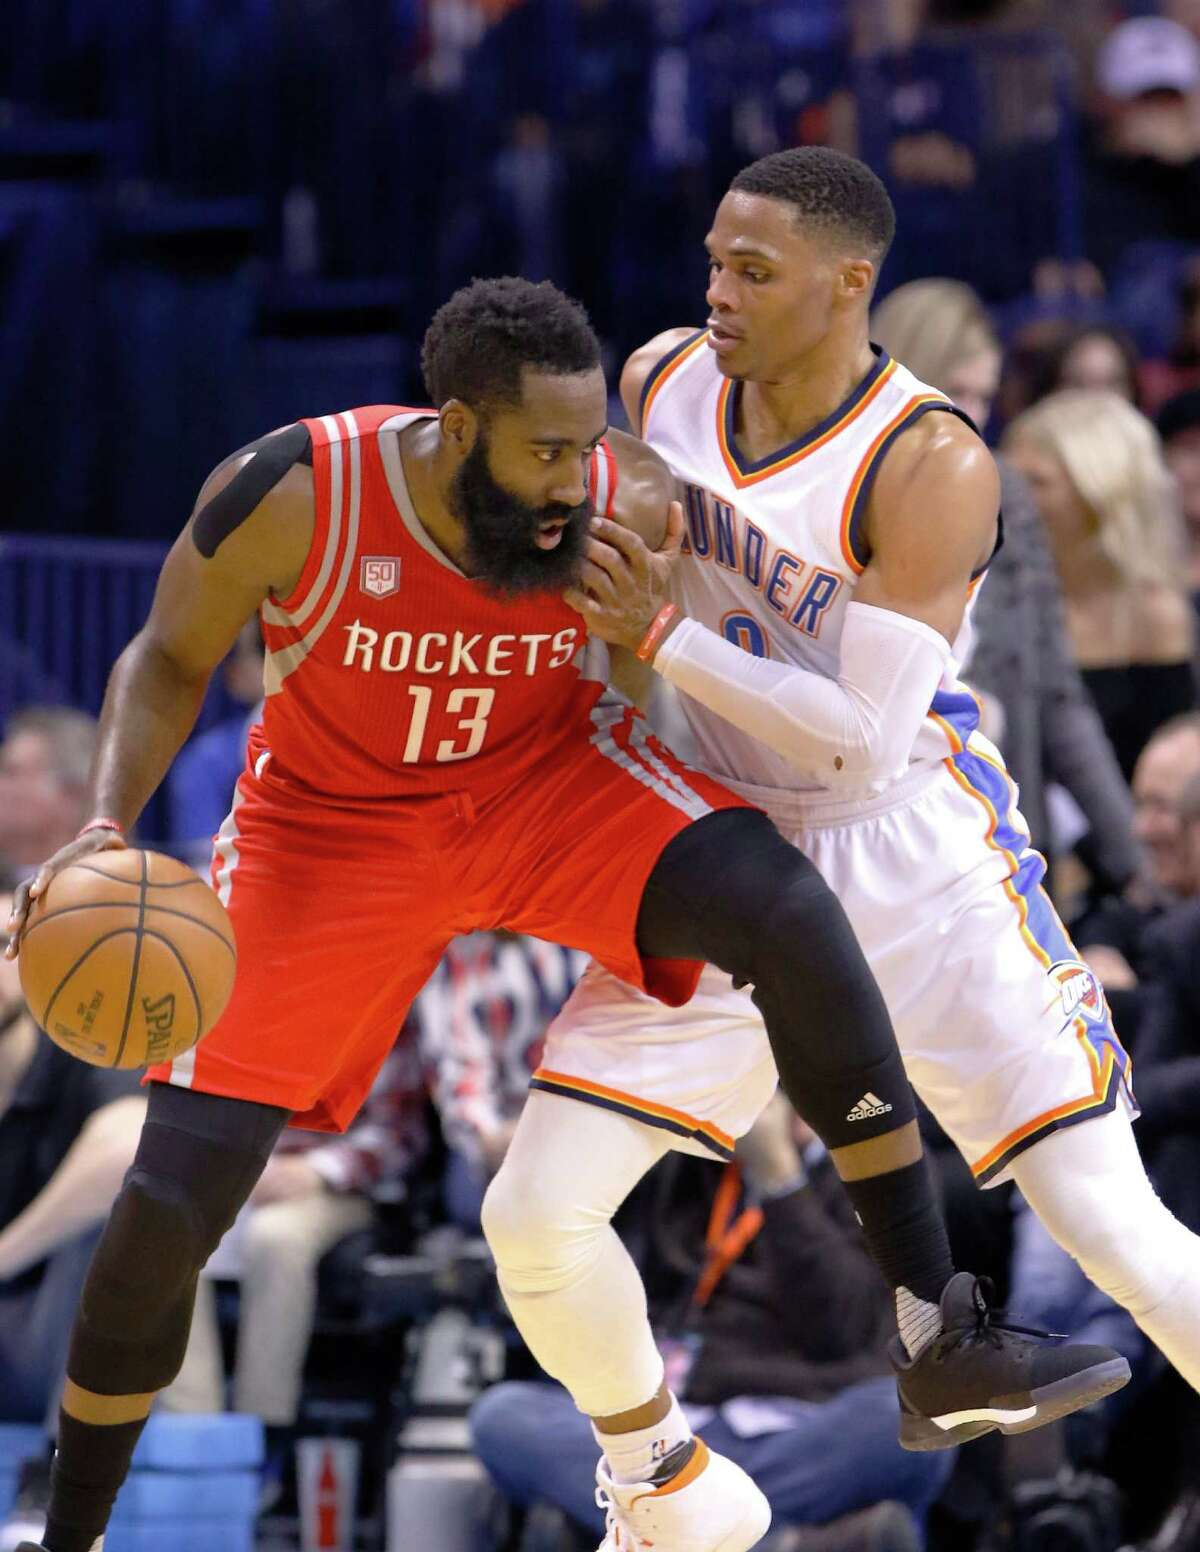 Houston Rockets guard James Harden (13) is defended by Oklahoma City Thunder guard Russell Westbrook (0) on a drive to the basket during the second half of an NBA basketball game in Oklahoma City, Friday, Dec. 9, 2016. Houston won 102-99. (AP Photo/Alonzo Adams)